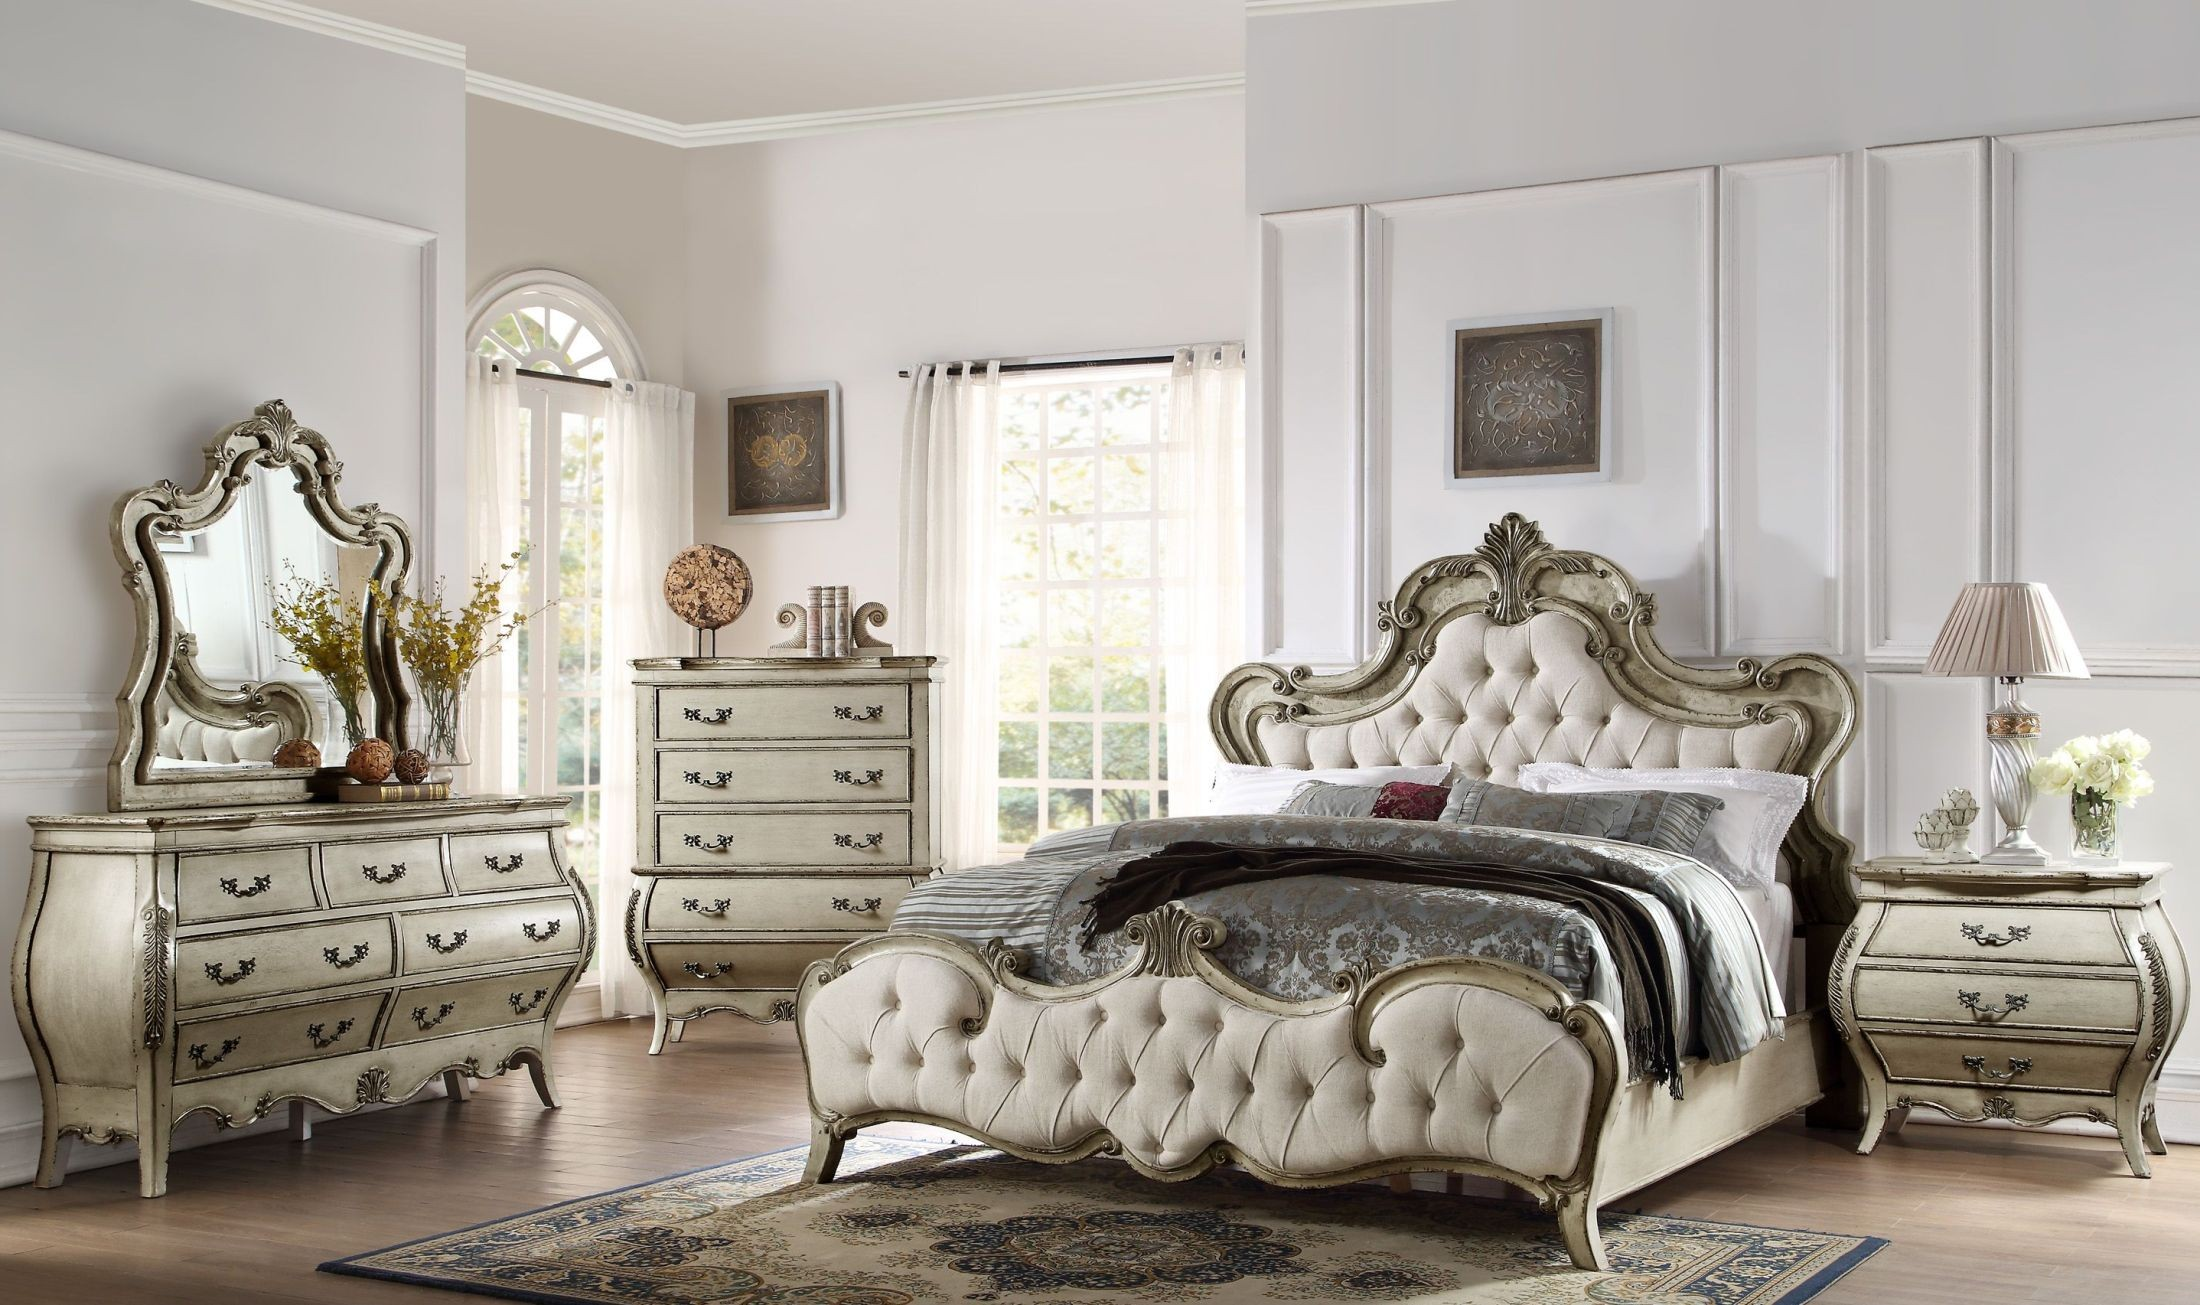 Elsmere Antique Grey Upholstered Bedroom Set From Homelegance Coleman Furniture